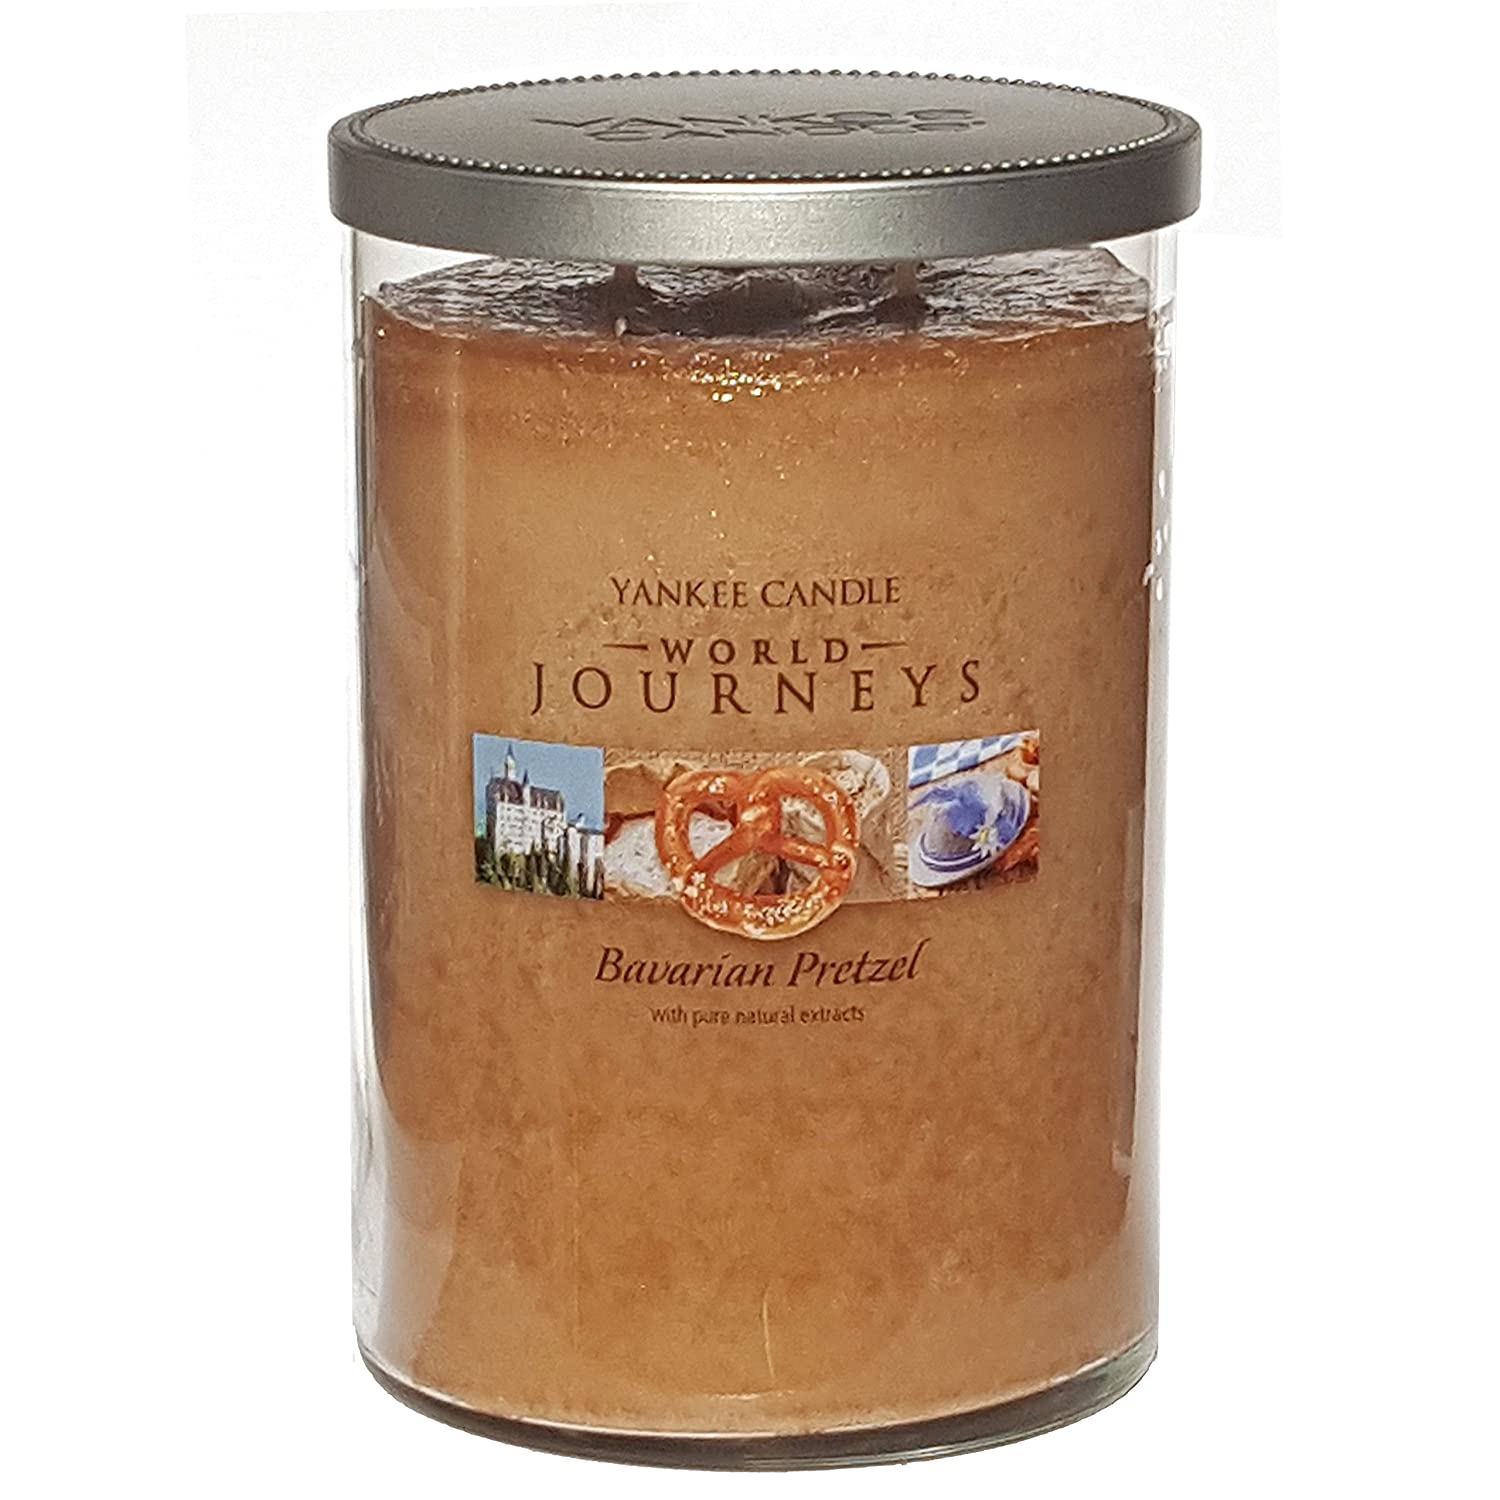 Yankee Candle - Candela in giara grande, edizione limitata, rara ed ufficiale della marca Yankee Candle gamma World Journeys, fragranza: Bavarian Pretzel, con doppio stoppino, da 566 g My Planet